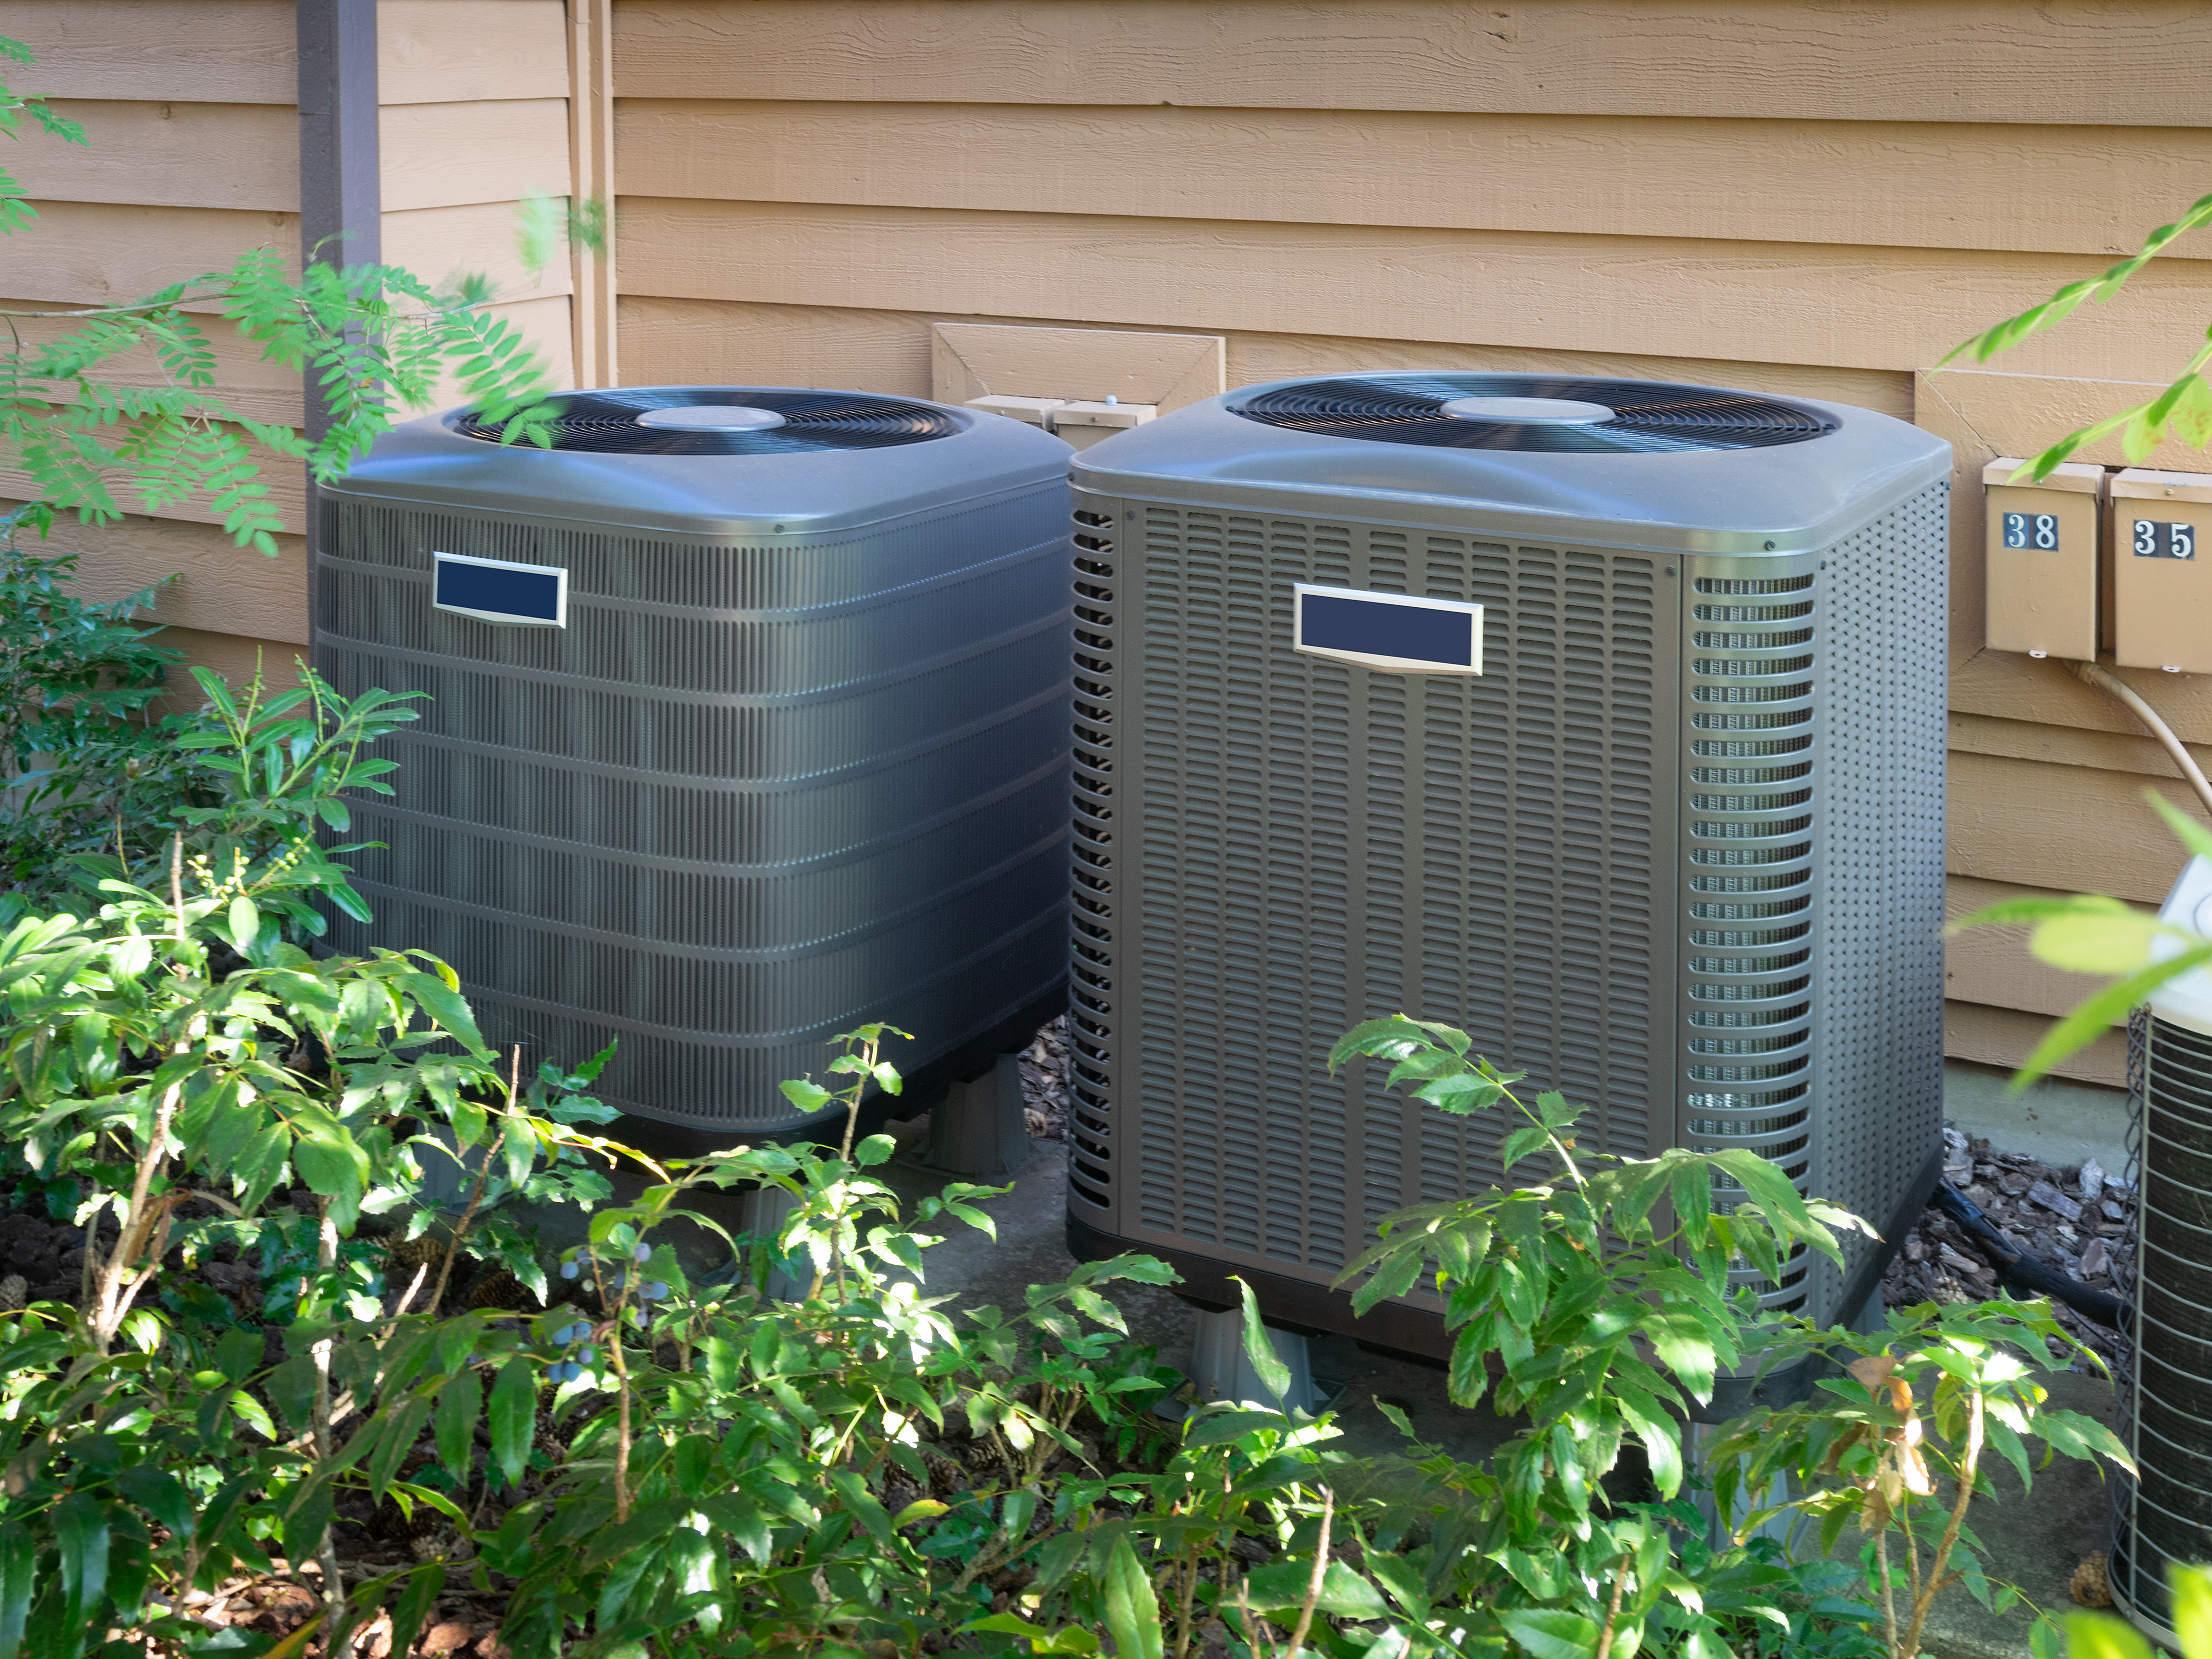 Air conditioning units outside an apartment complex